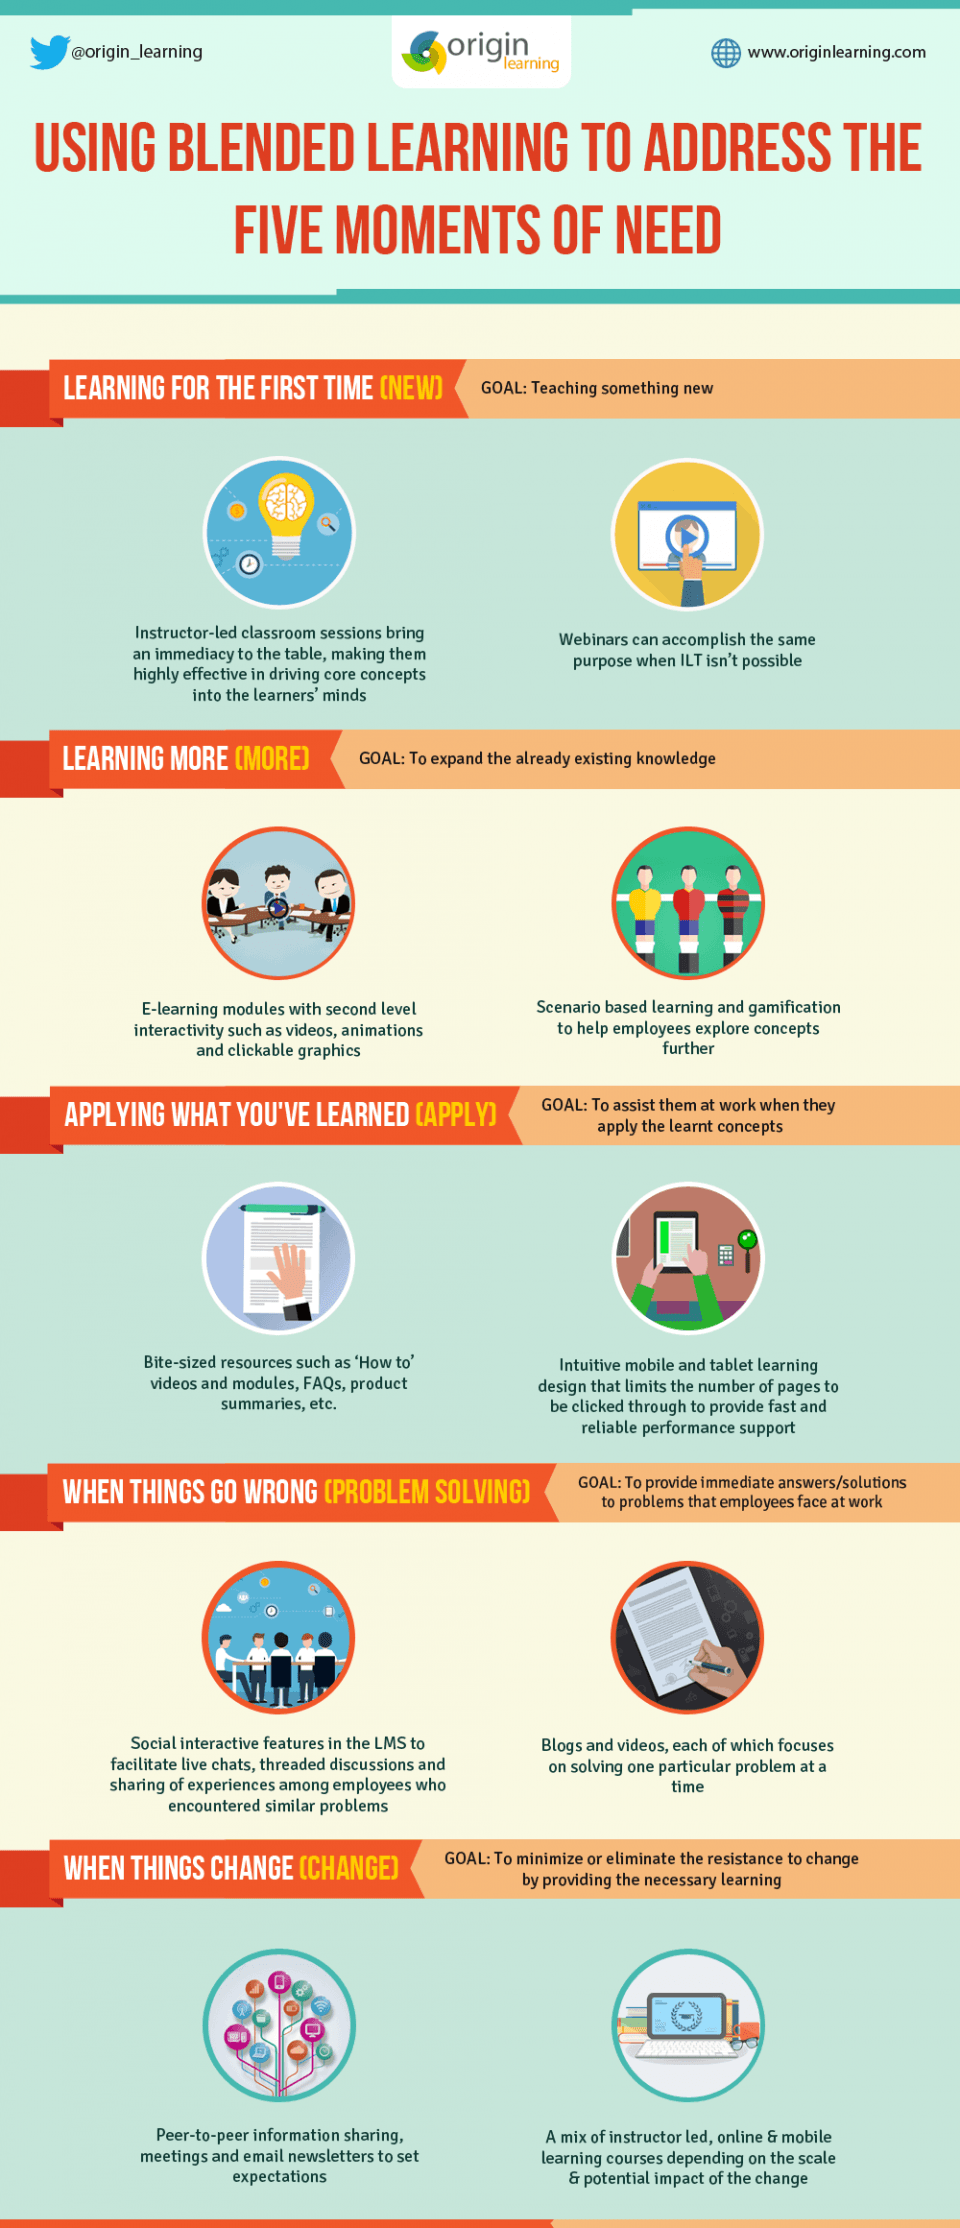 Blended Learning to Address the Five Moments of Need Infographic